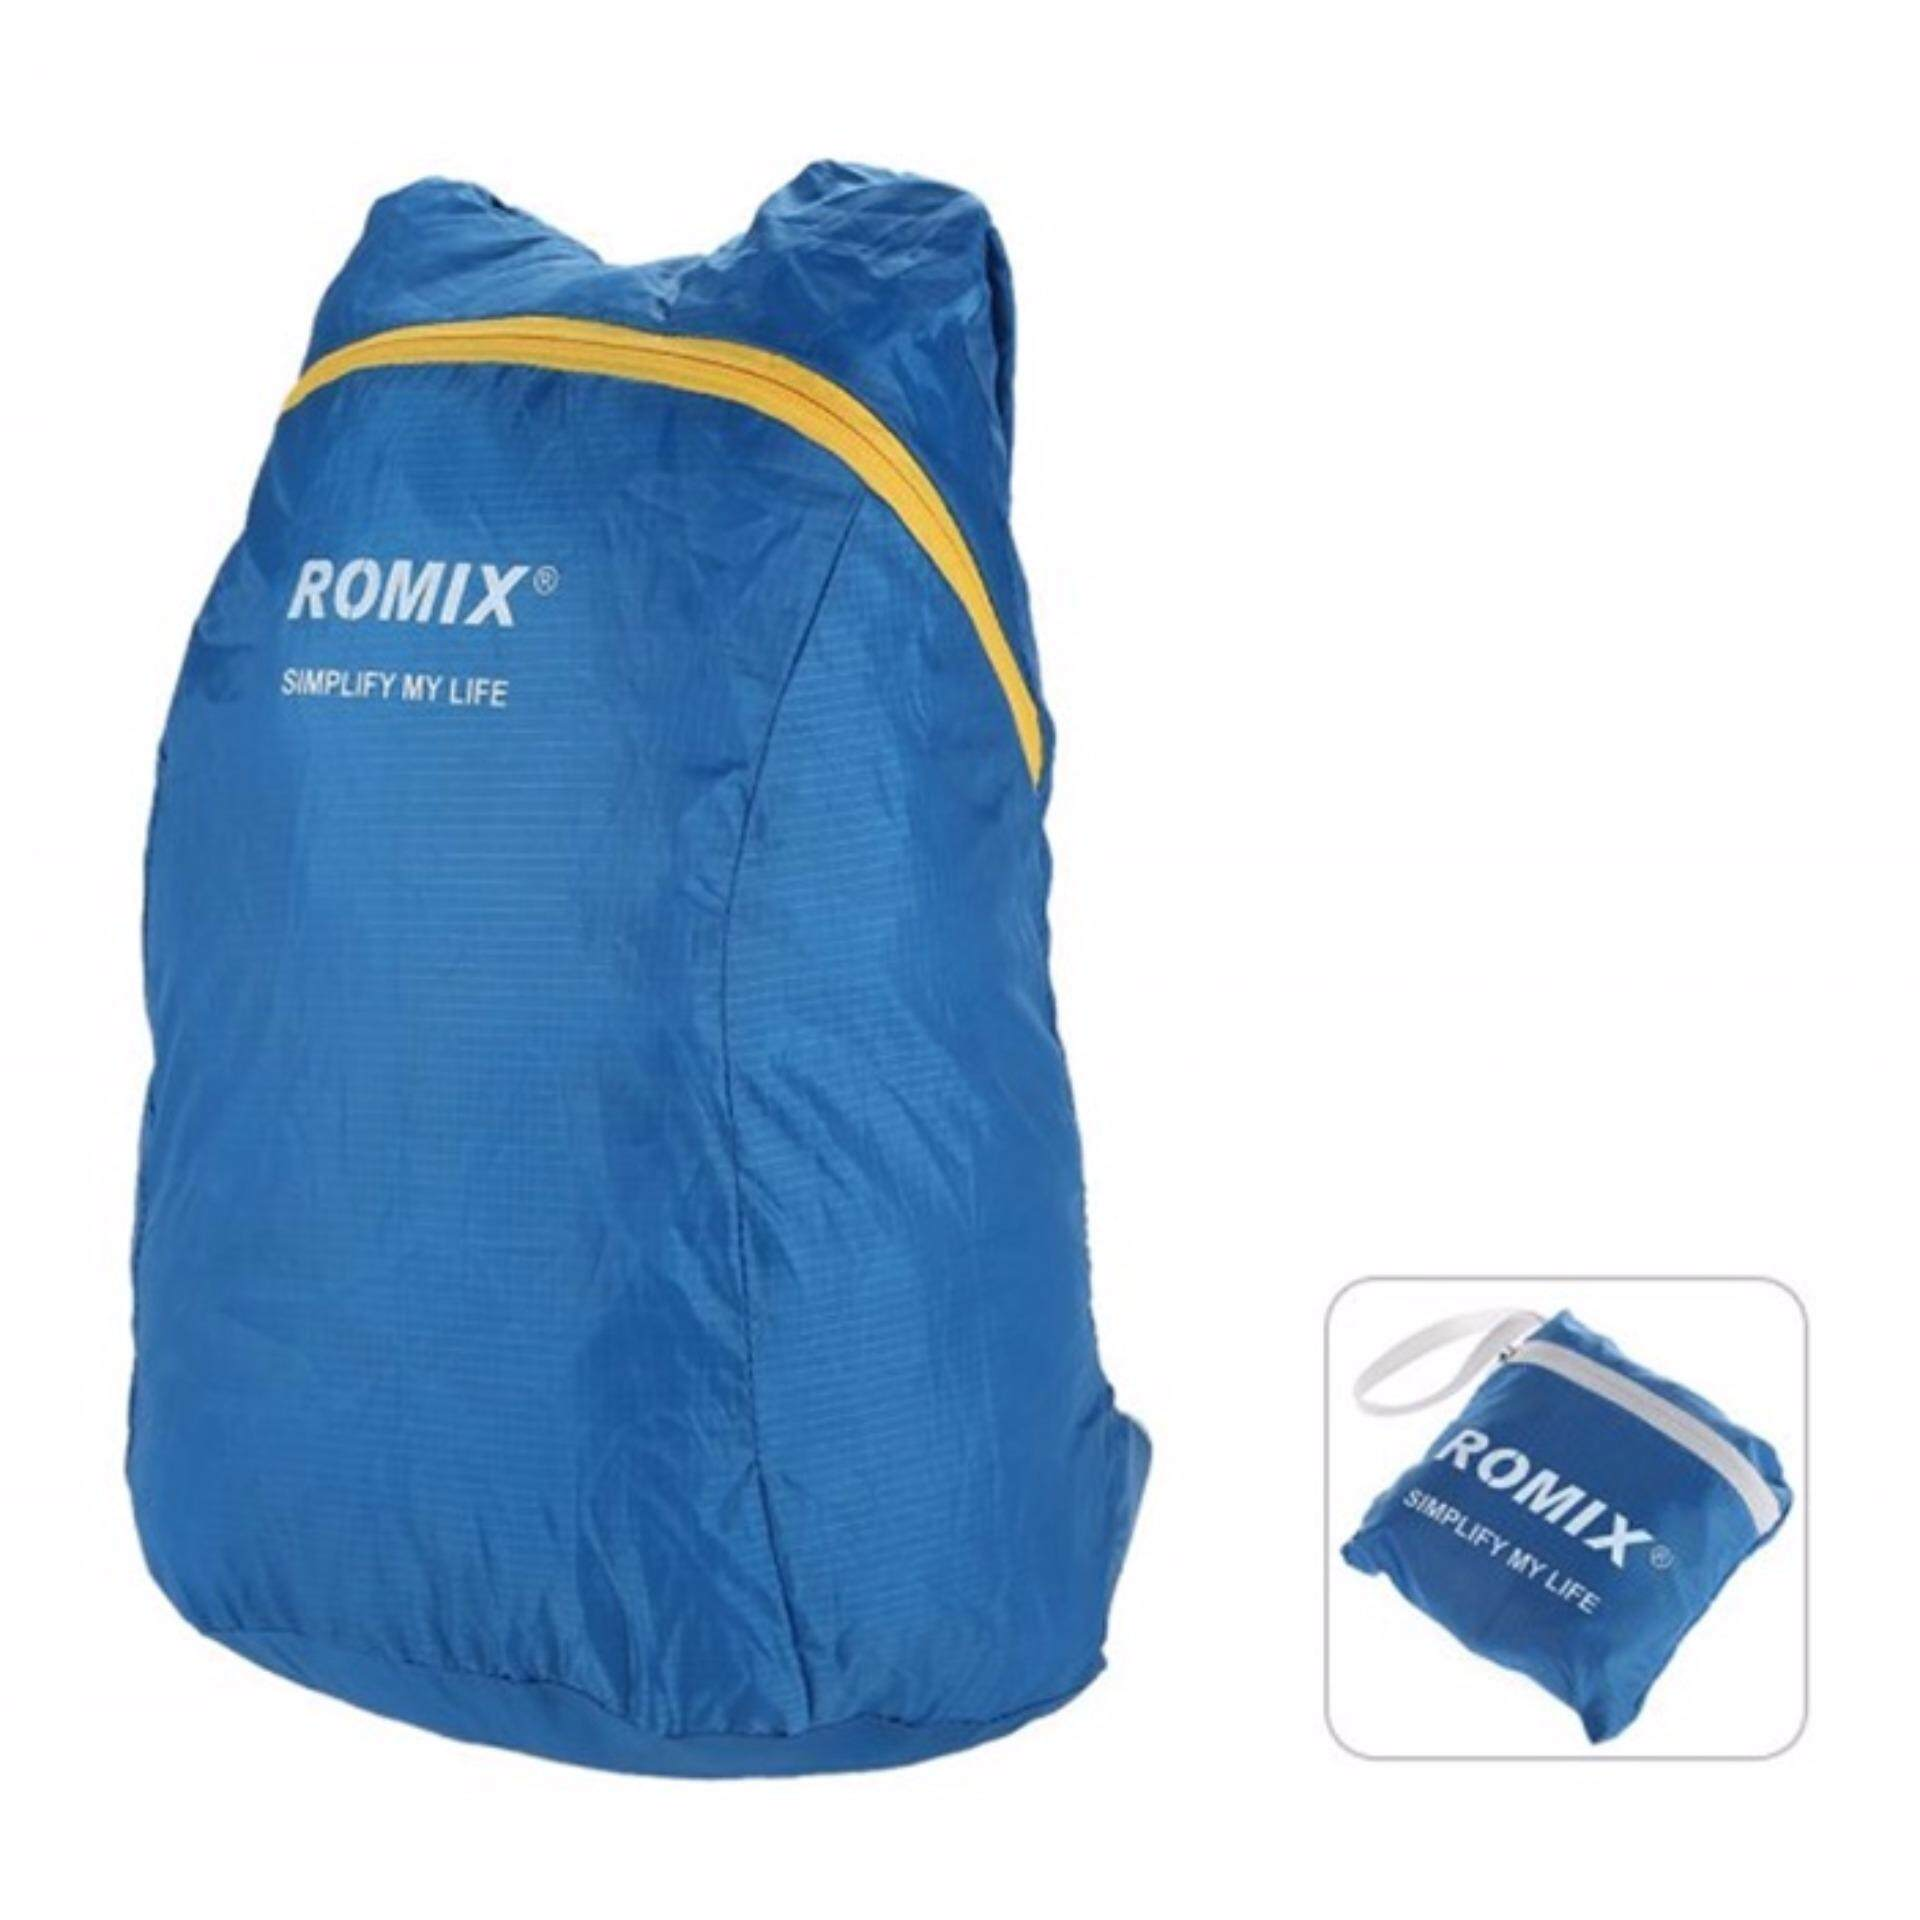 BACKPACK Romix Original Waterproof Foldable backpack (Travel, Exercise, Sport, Outdoor, Camping, Trip, Hiking)